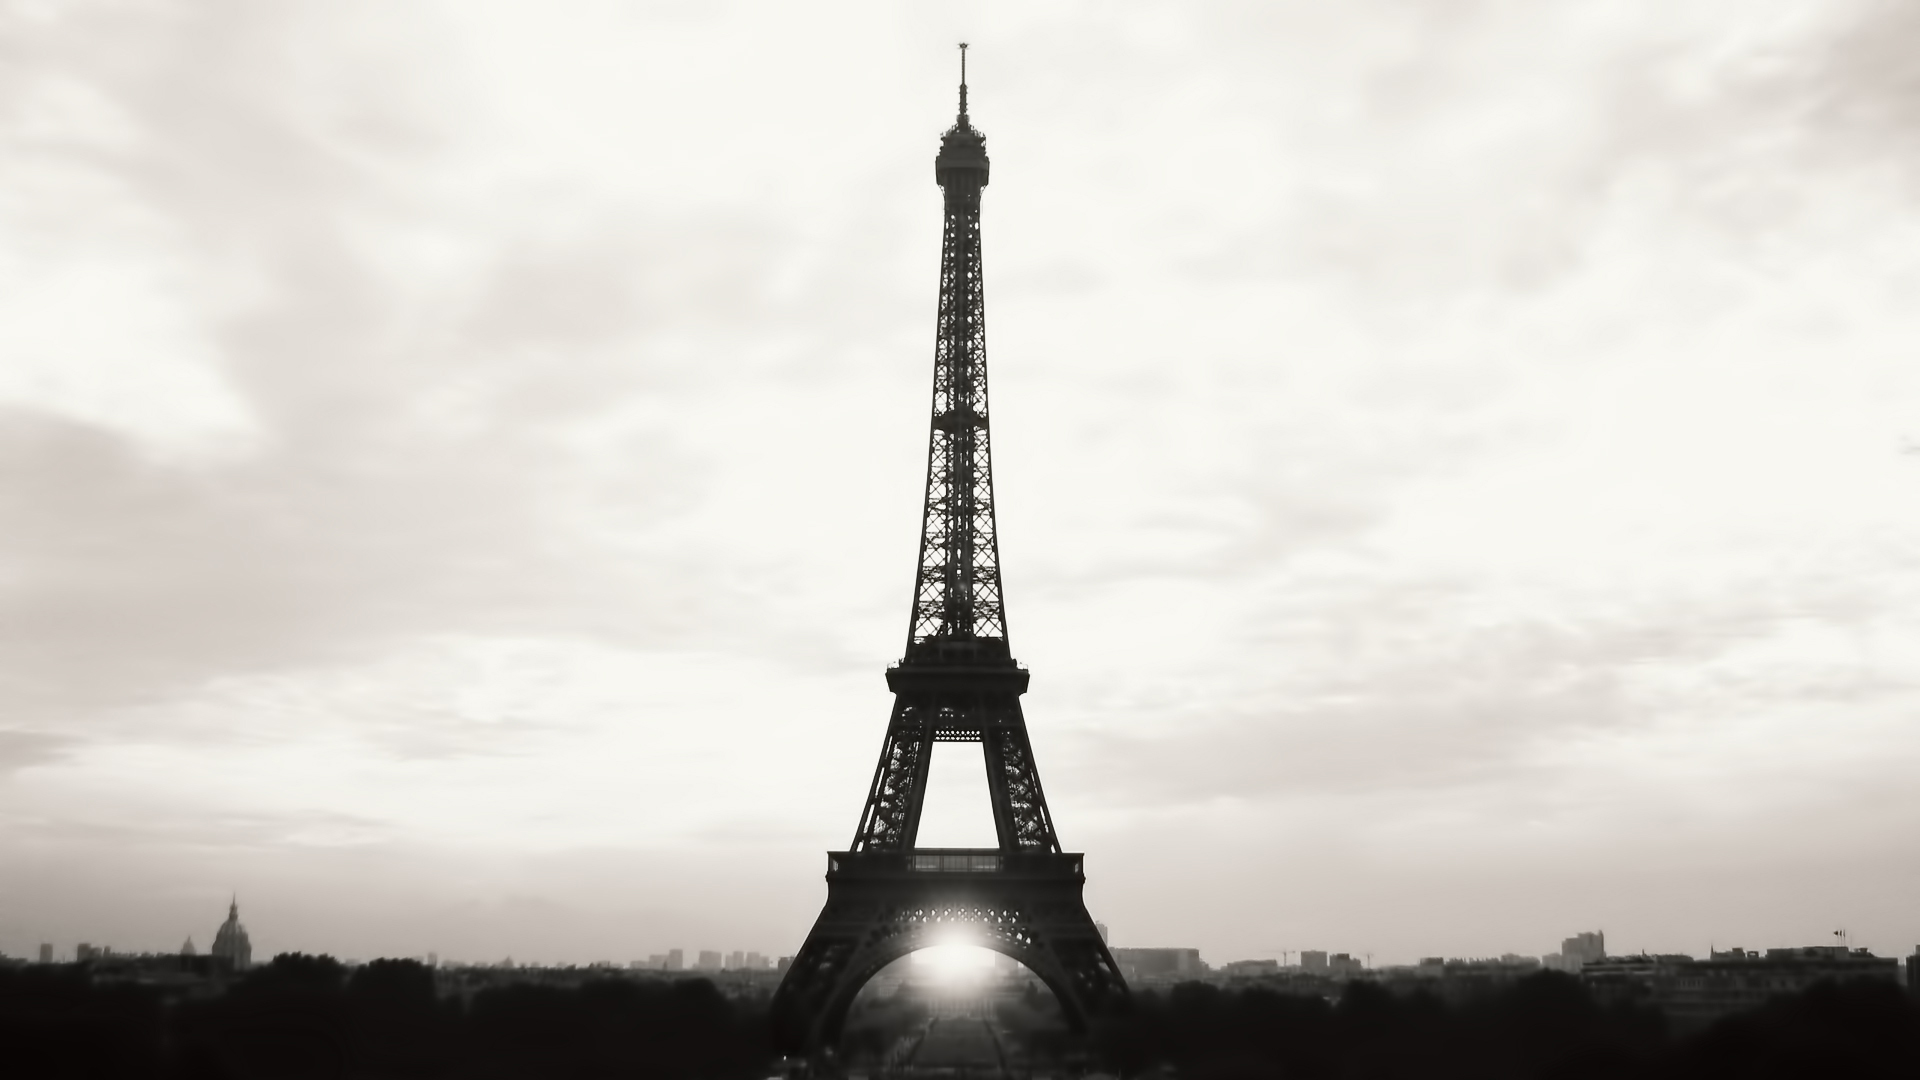 man made eiffel tower wallpaper